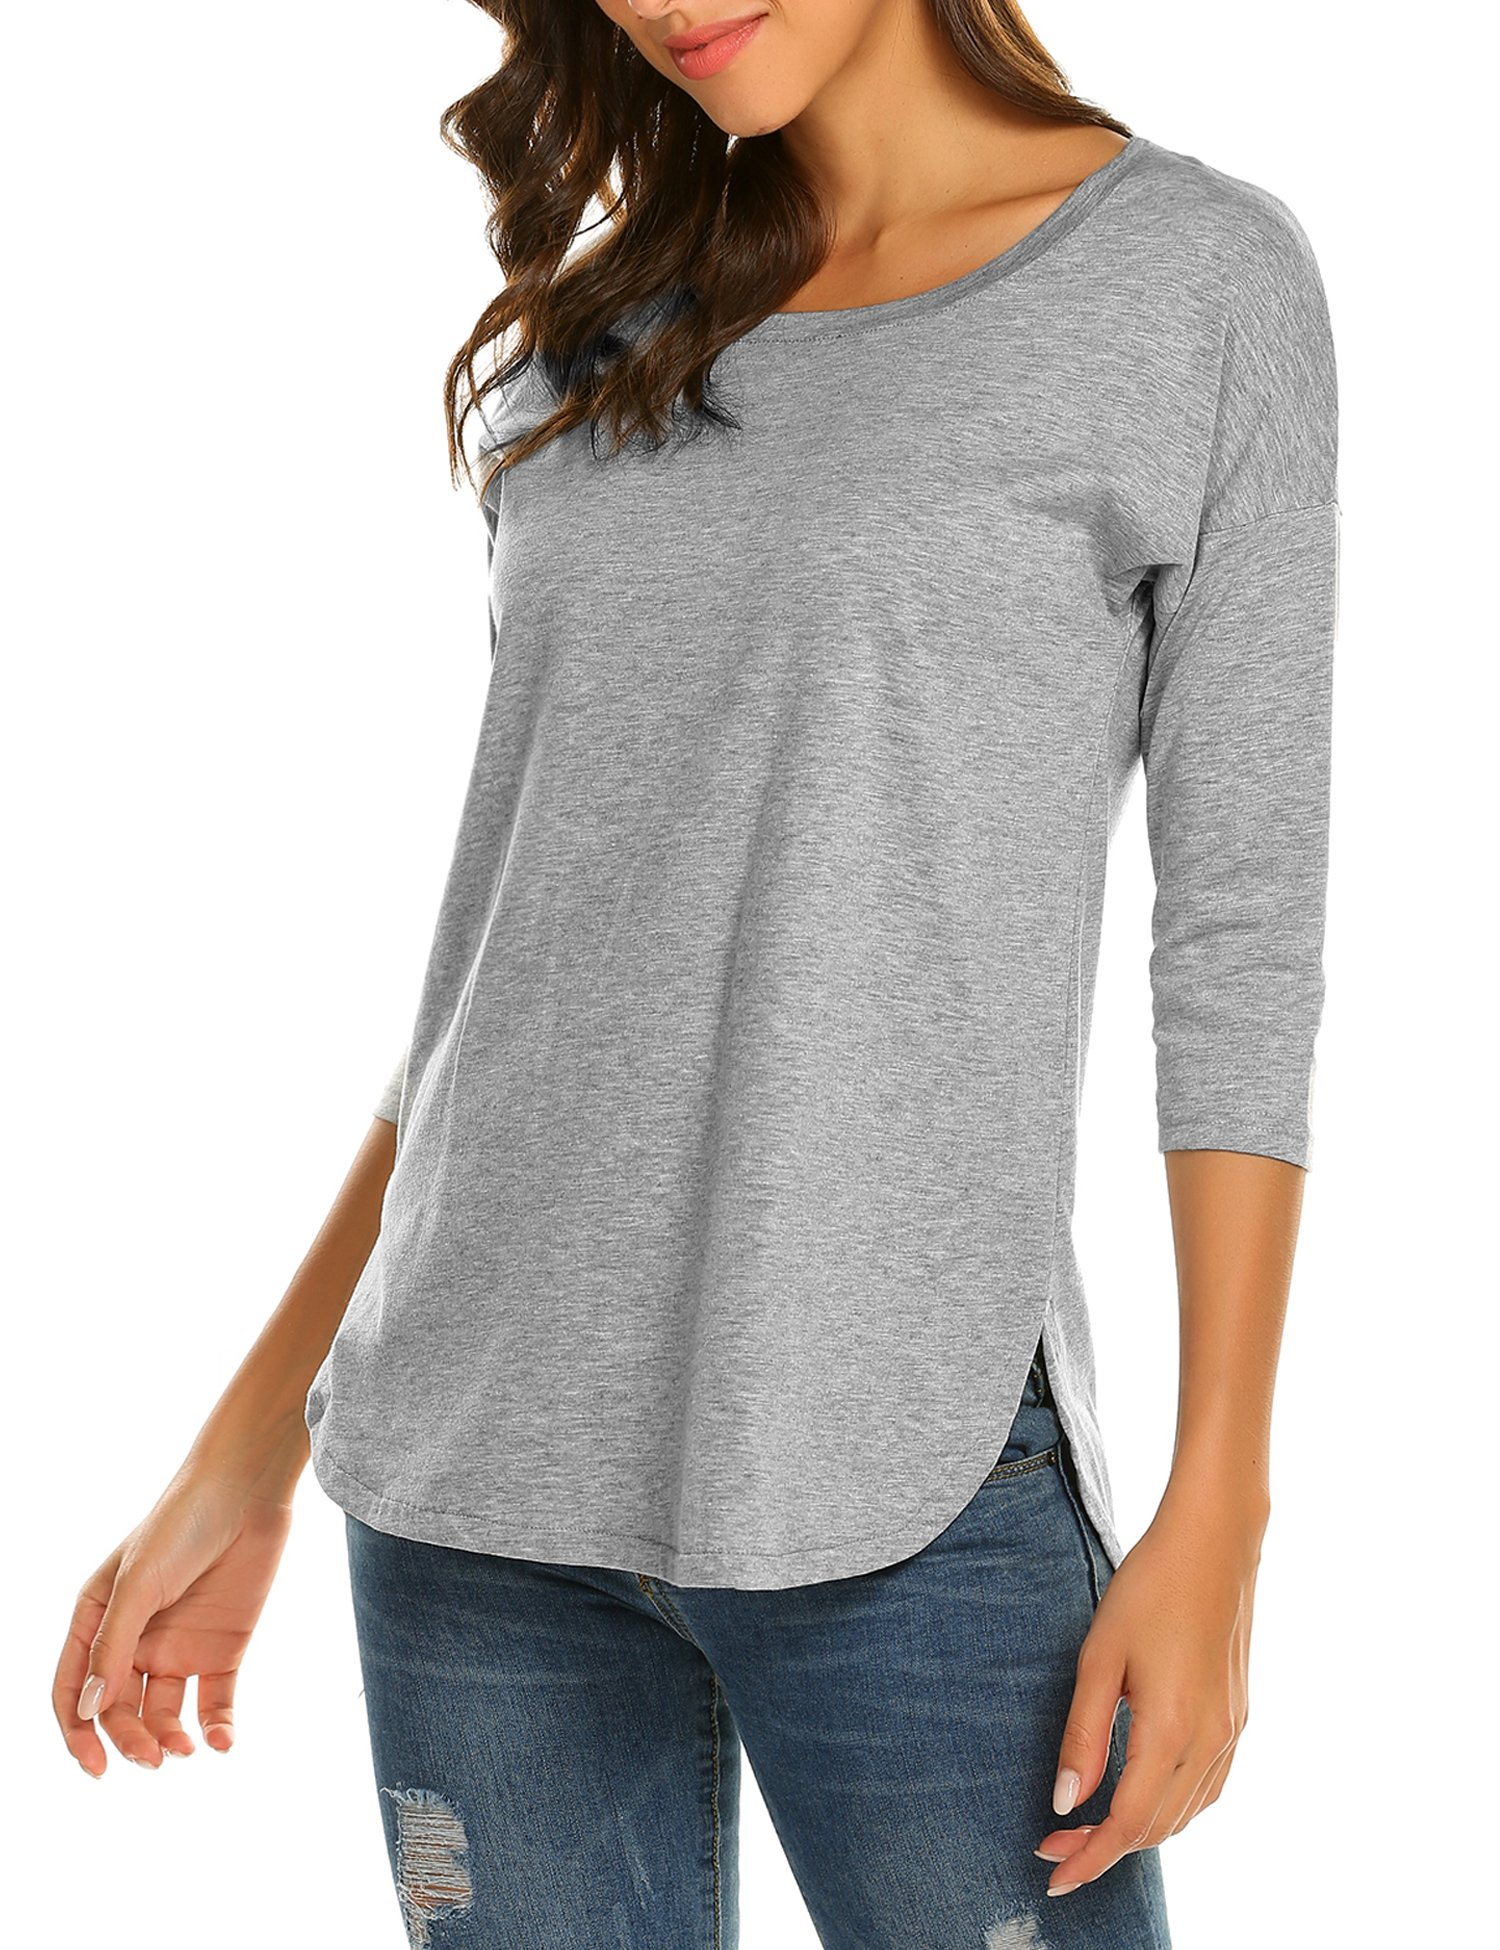 3/4 Sleeve Tunic Tops,Sherosa Women's Side Slit Shirt (M, Gray)